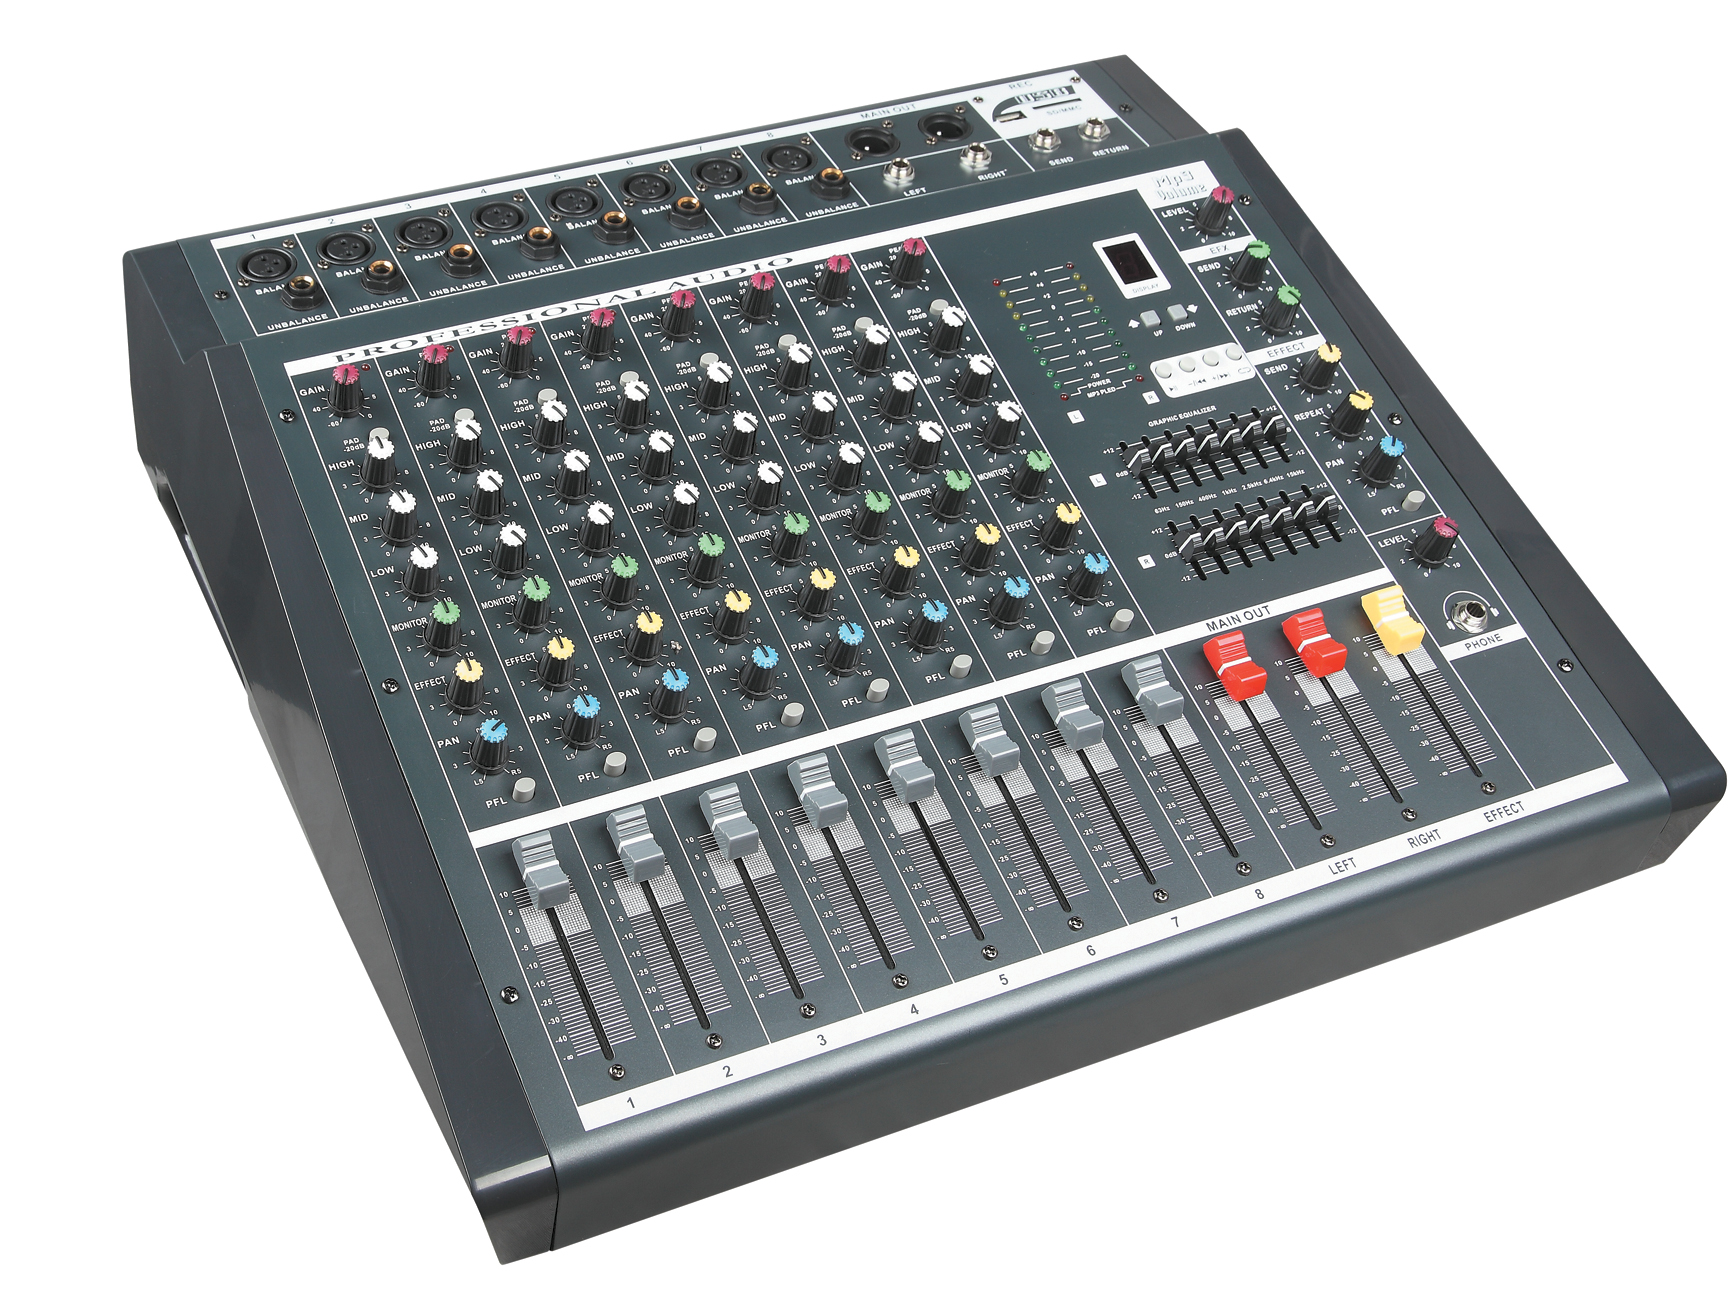 HANLE HP-08A(Power Mixer)